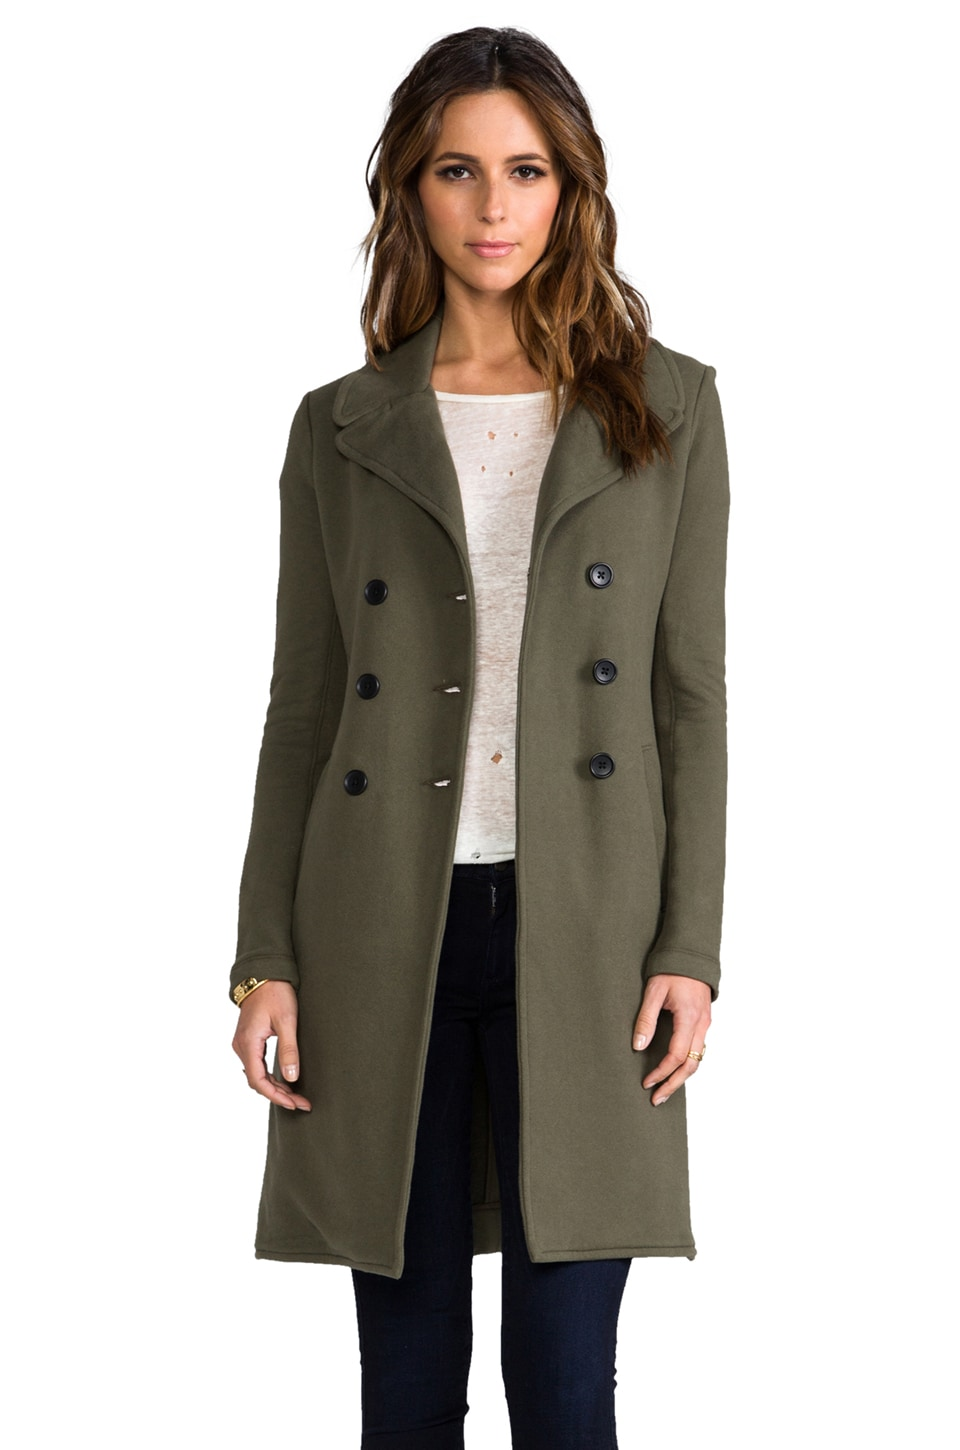 James Perse Long Fleece Military Coat in Army Green